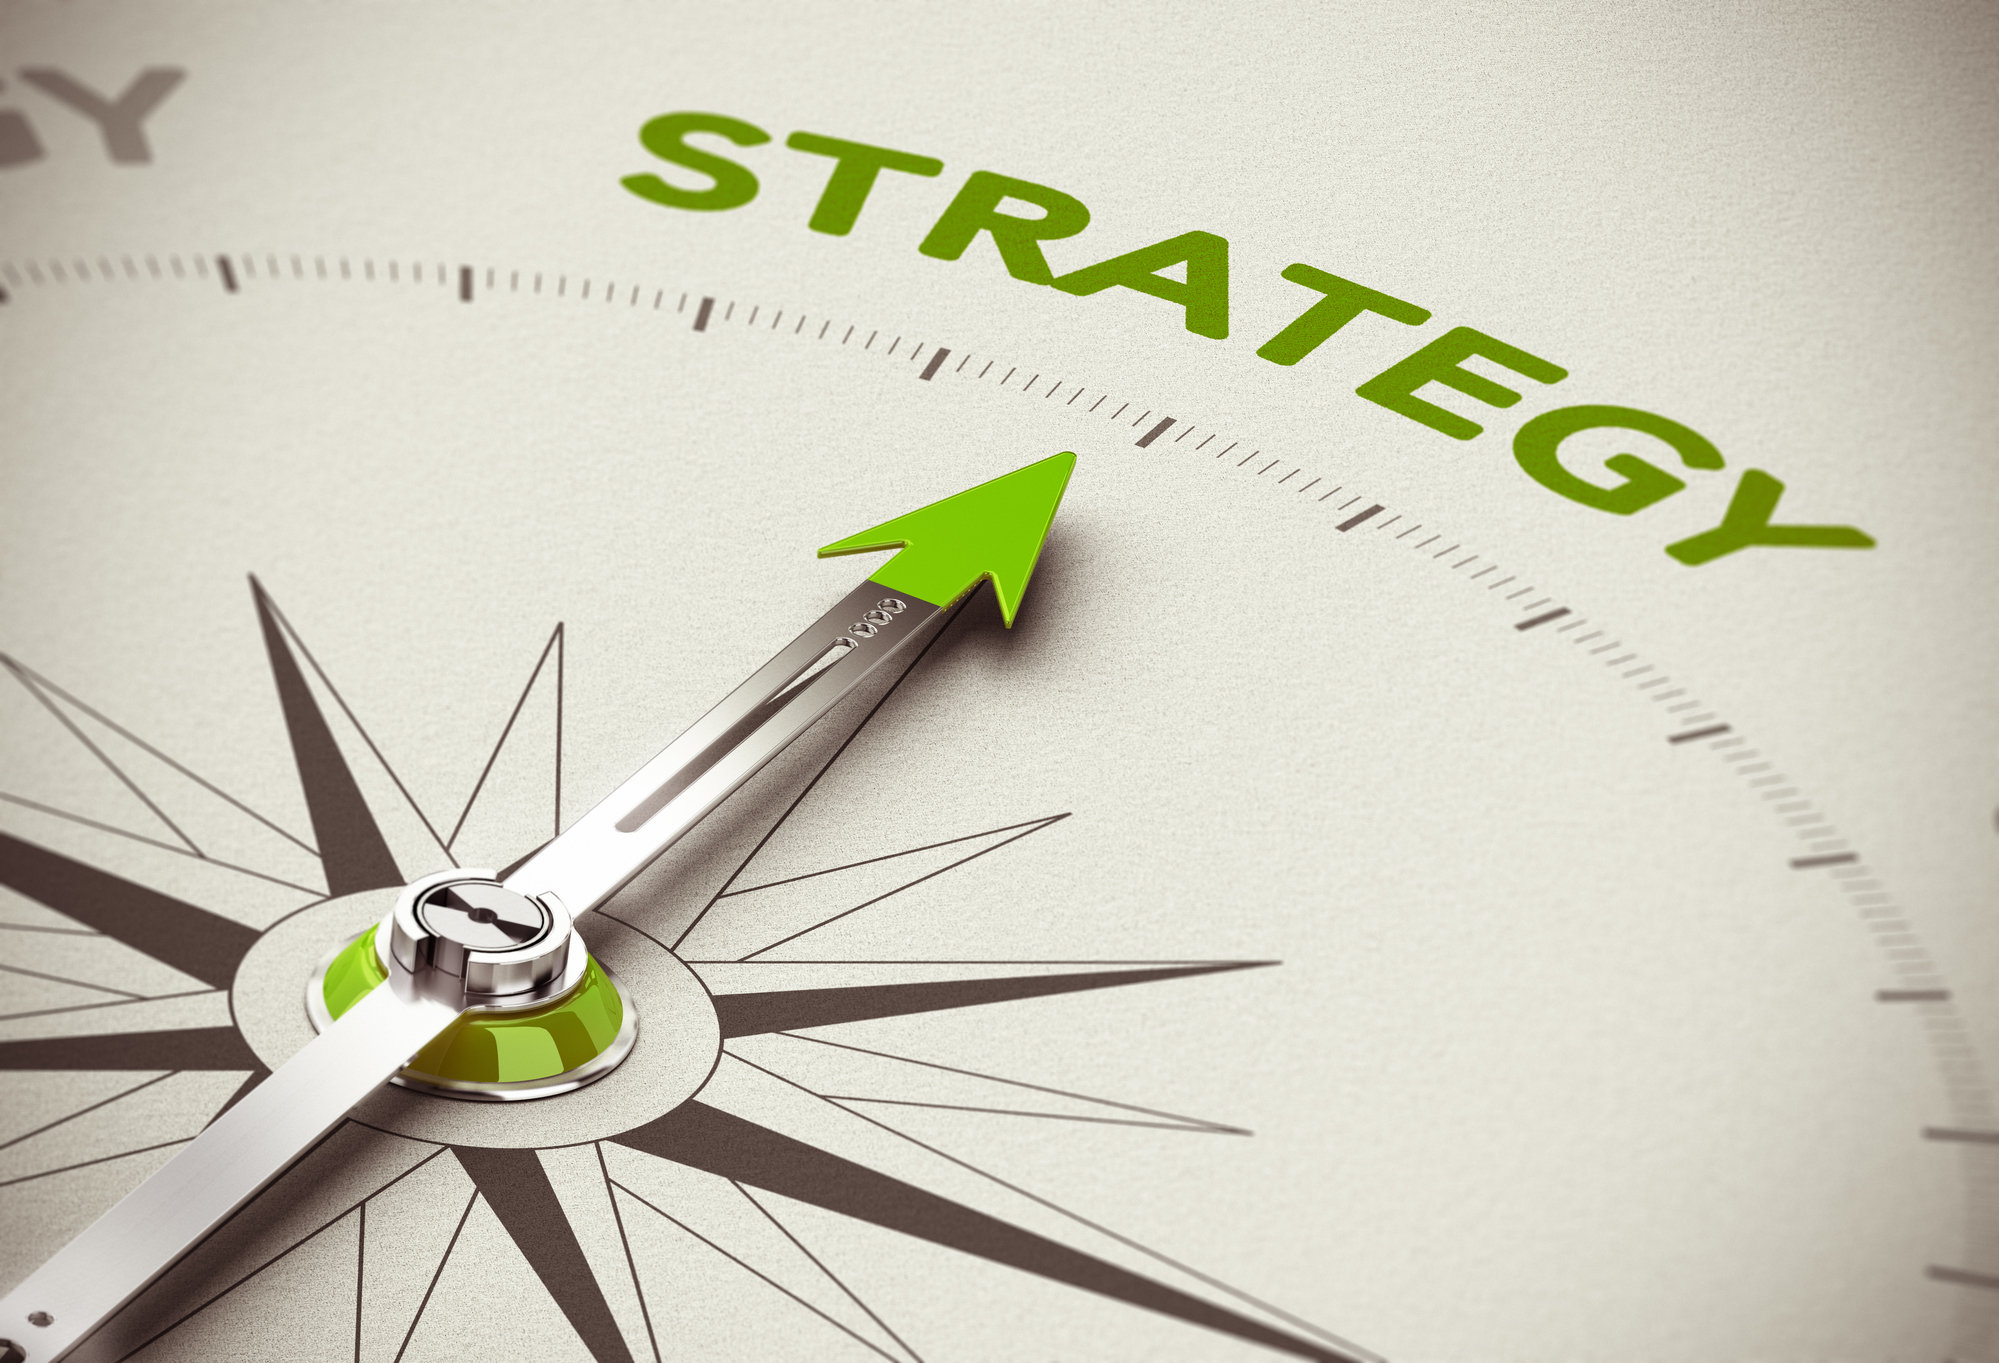 Digital Marketing Strategy And Plan Vs Tactics You Must